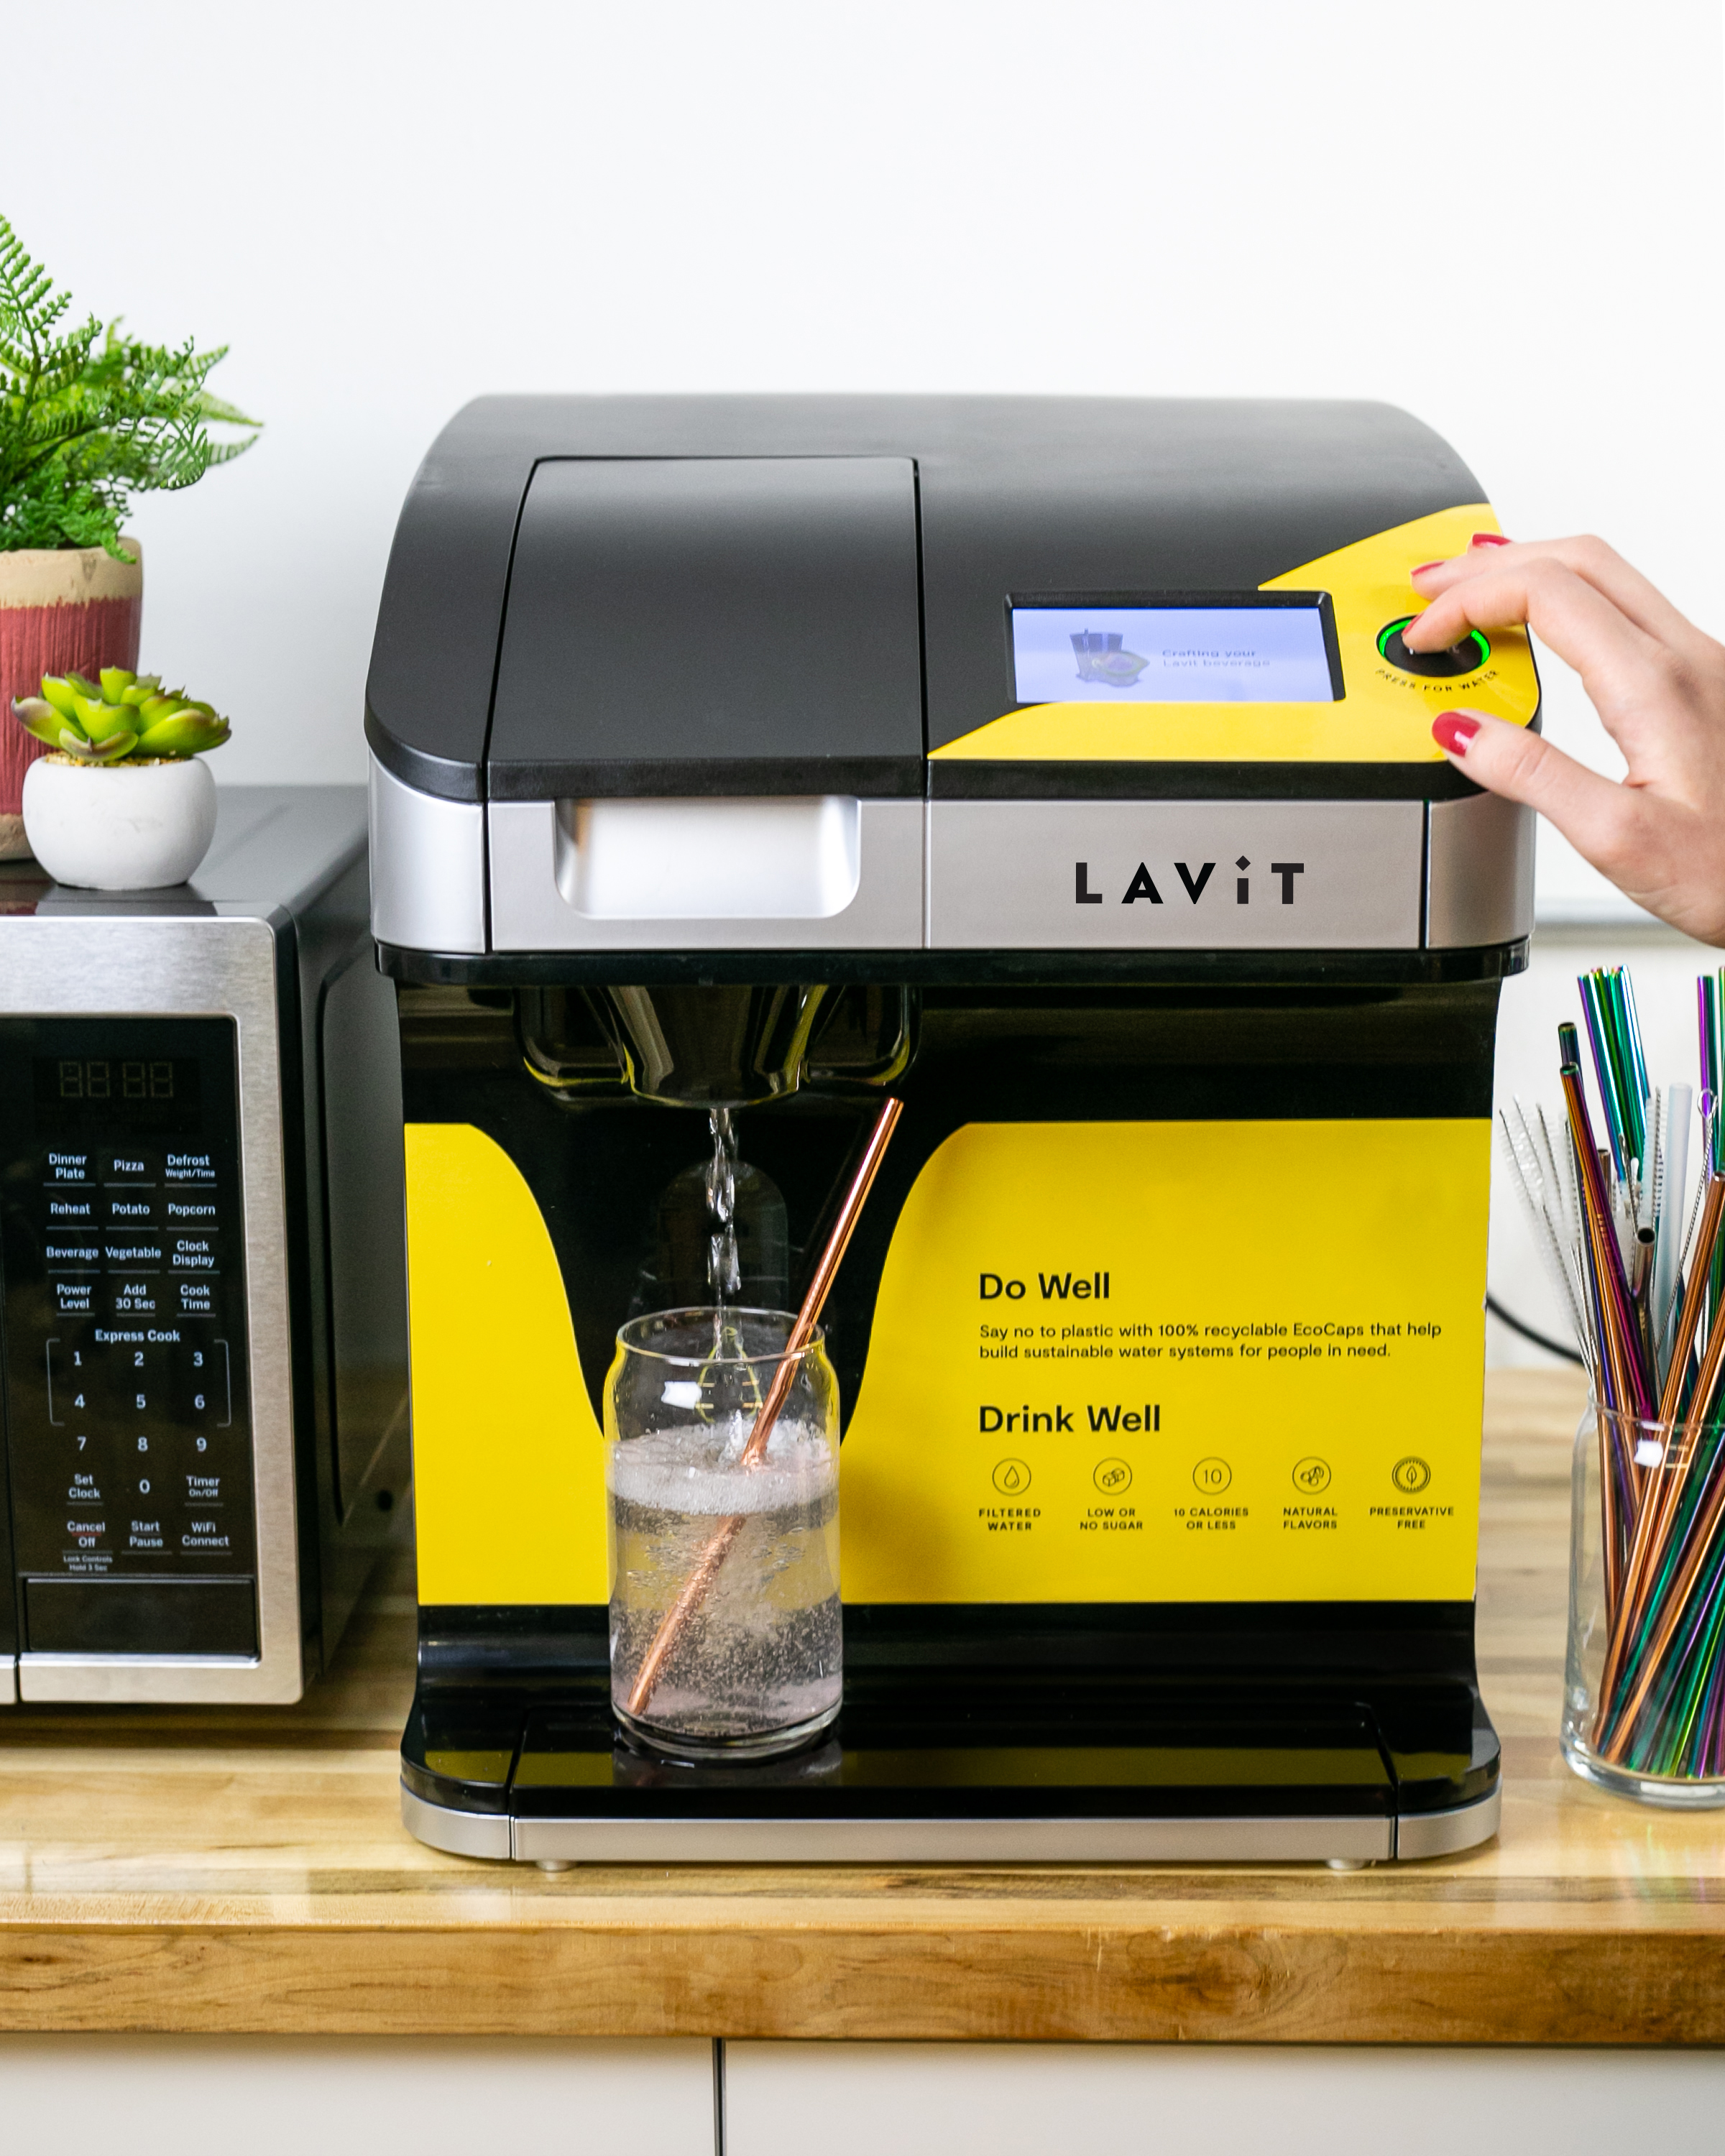 OurMachine - Lavit is a machine that sits atop your counter. And that's it. No hidden equipment, no weird requirements. Also, the tank uses ozonation to self-sanitize every. single. night.